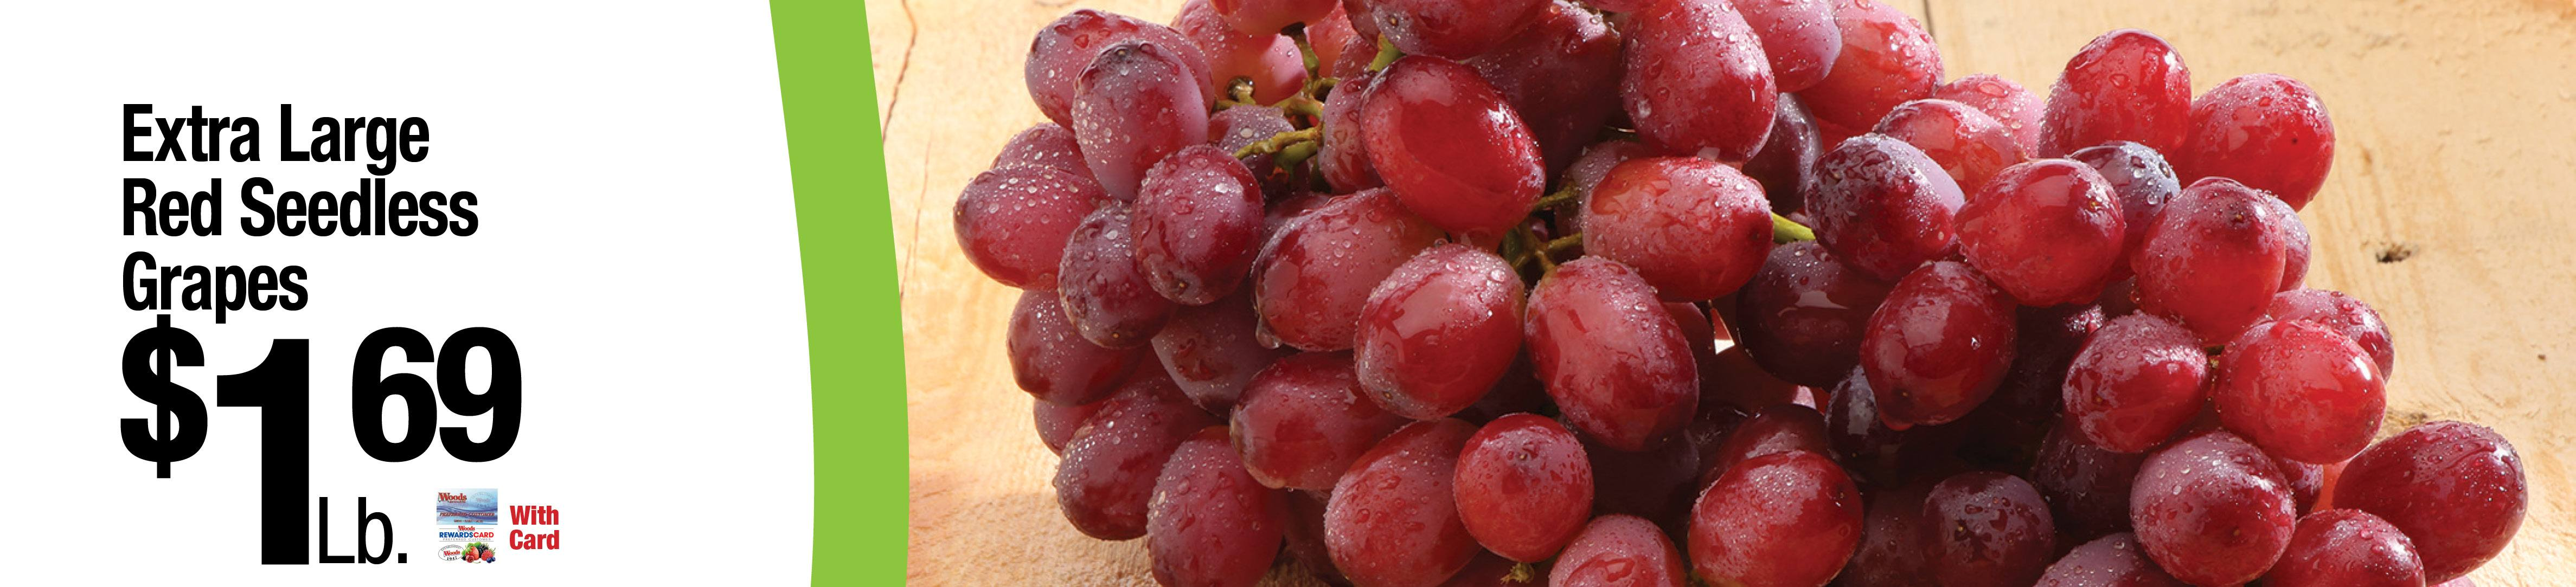 Extra Large Red Seedless Grapes $1.69Lb